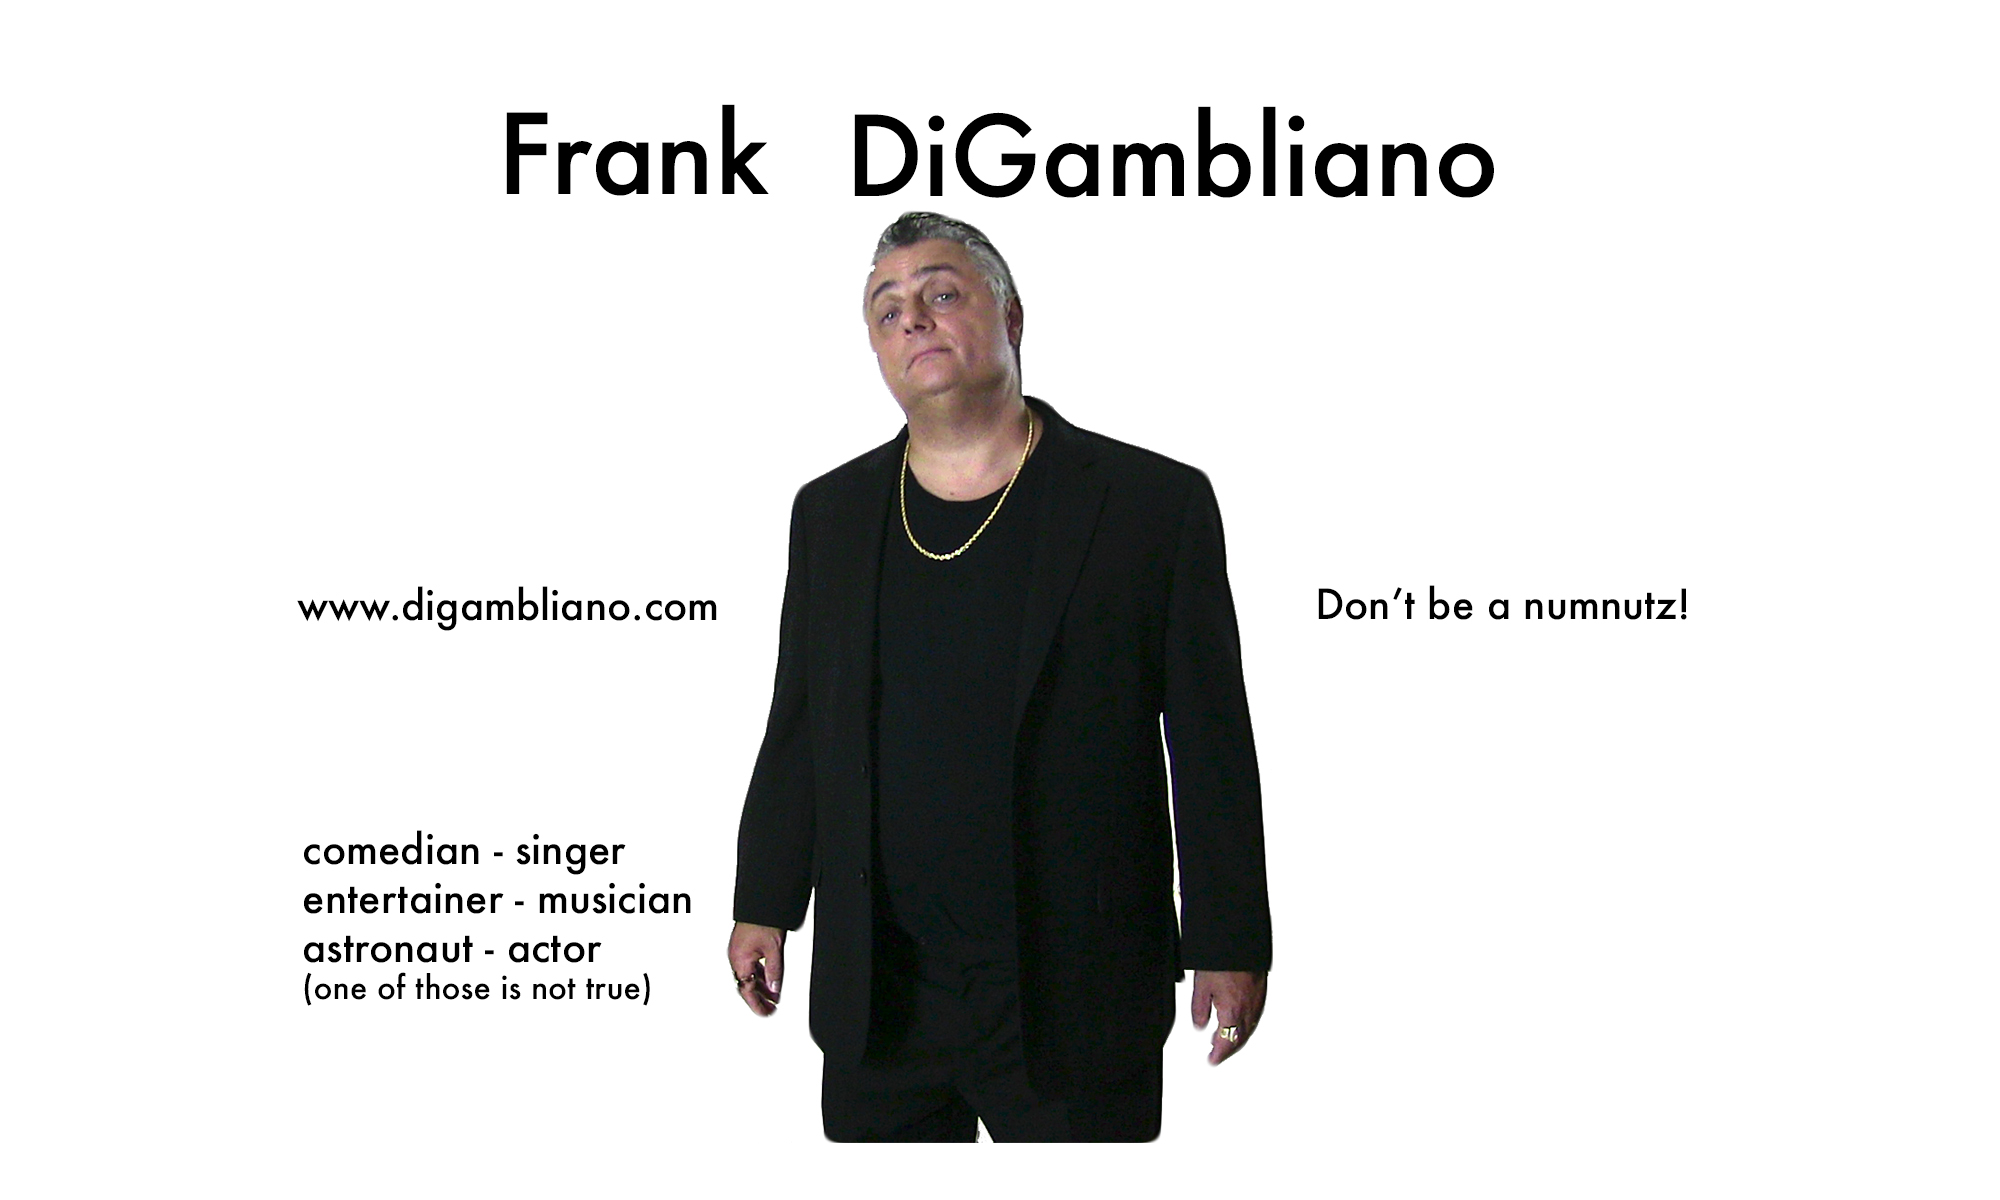 Frank DiGambliano